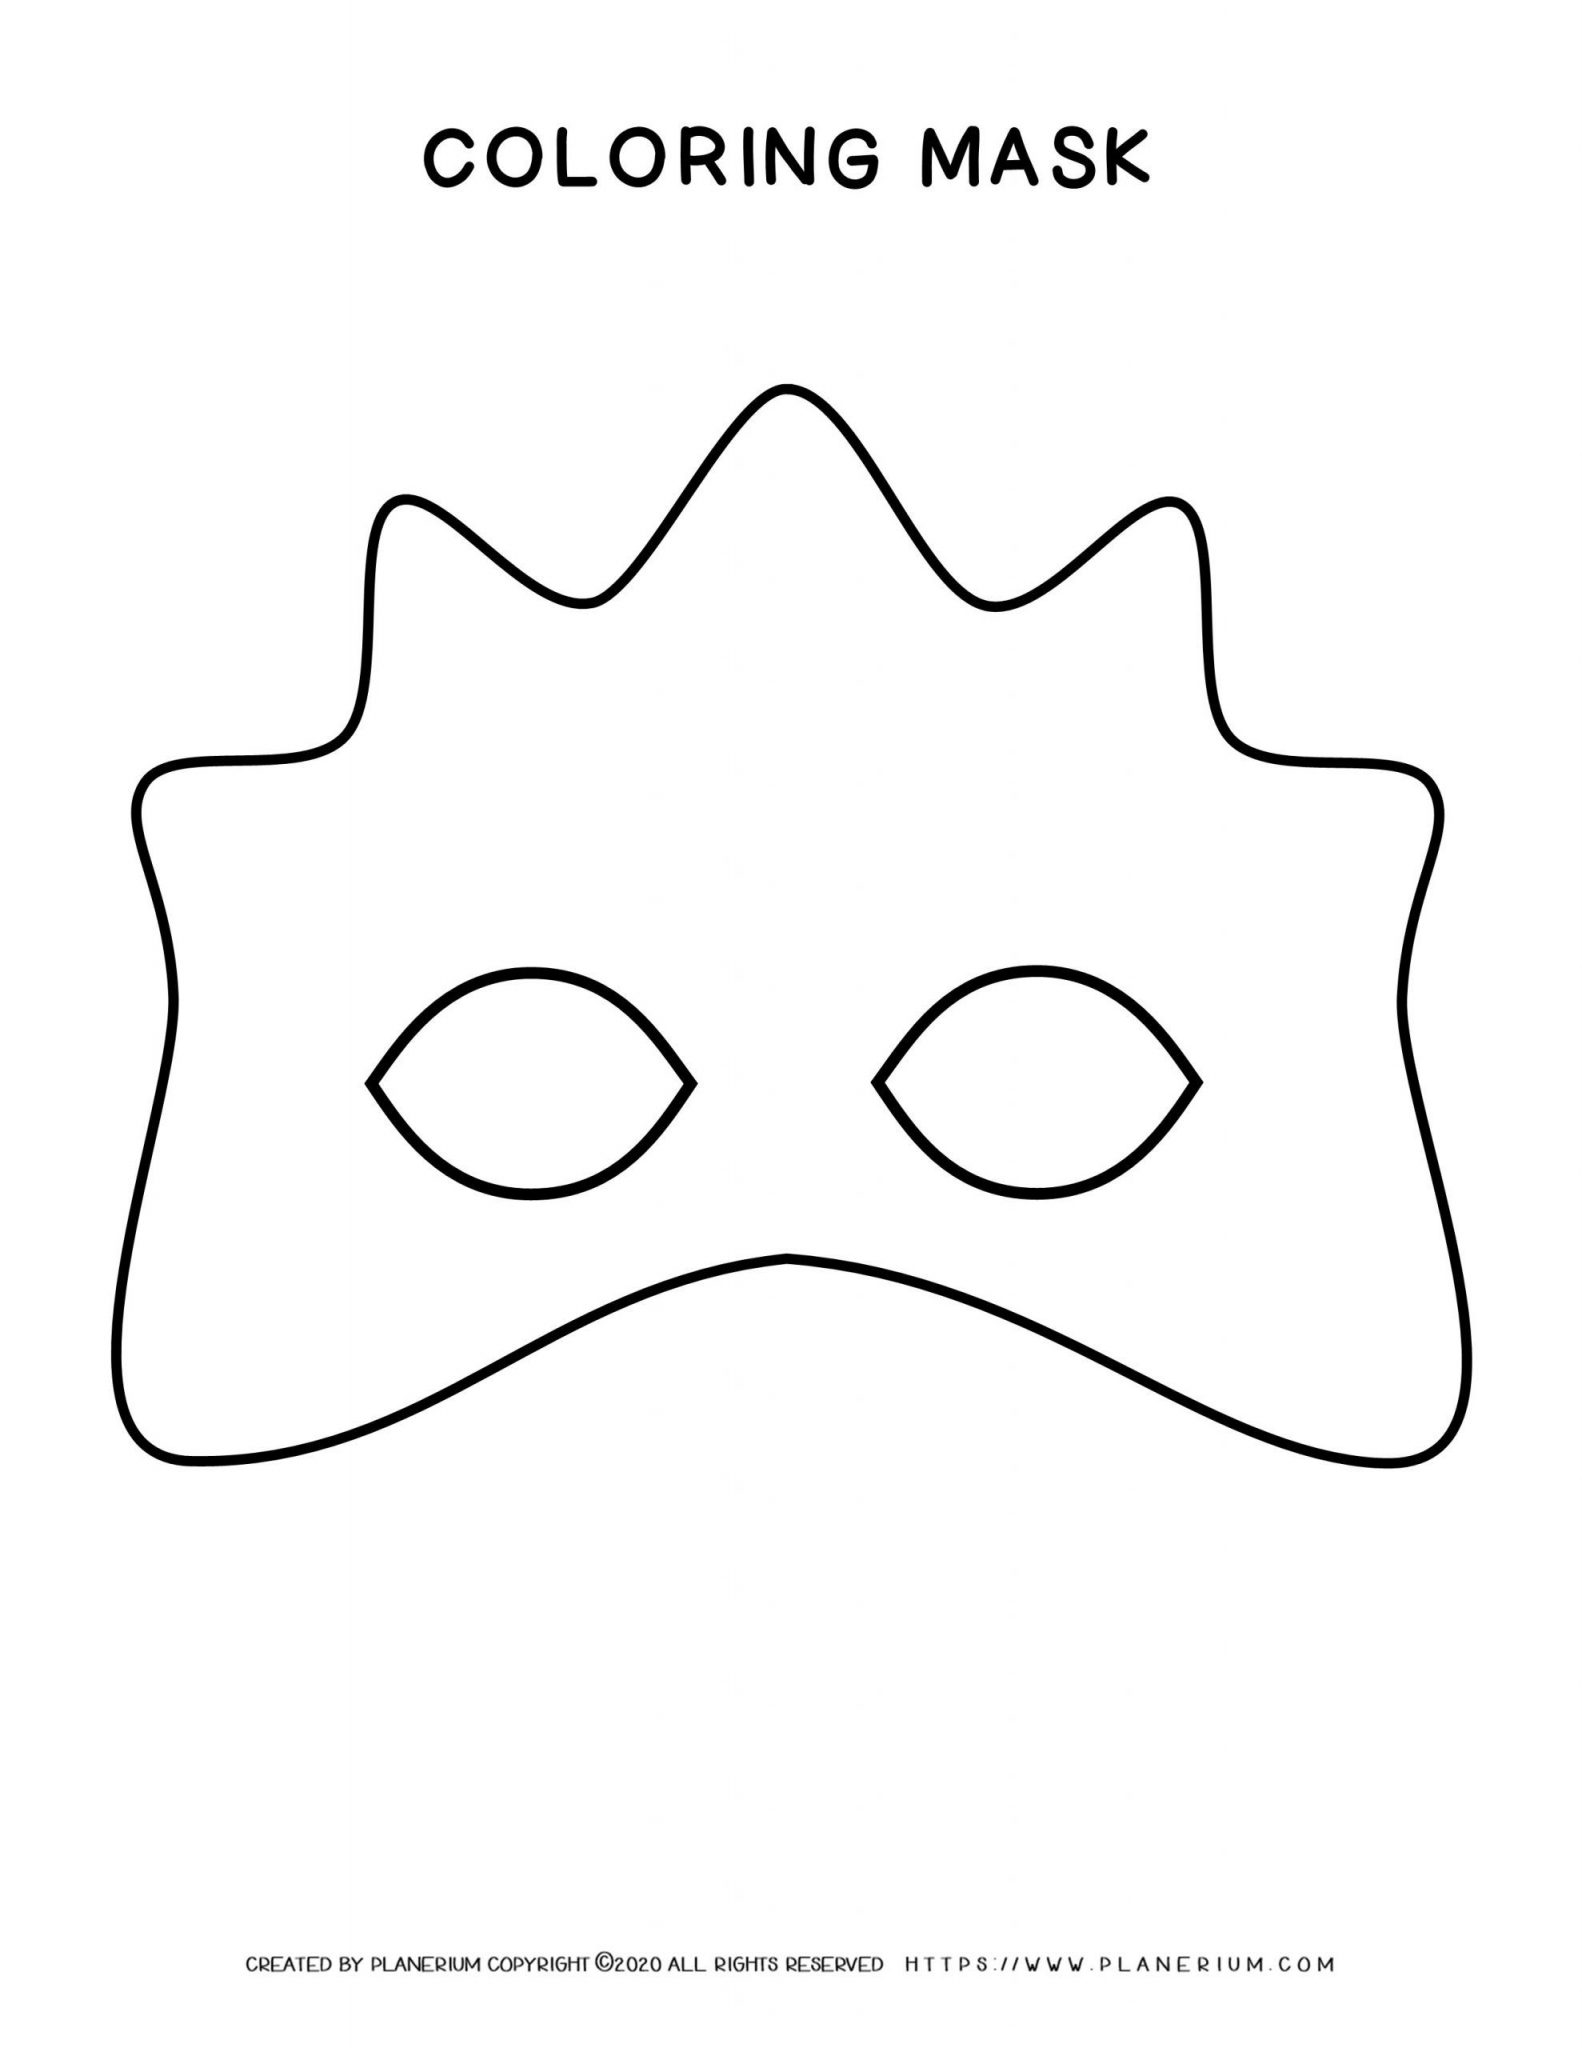 Carnival - Coloring Pages Worksheets - Eye Mask High | Planerium